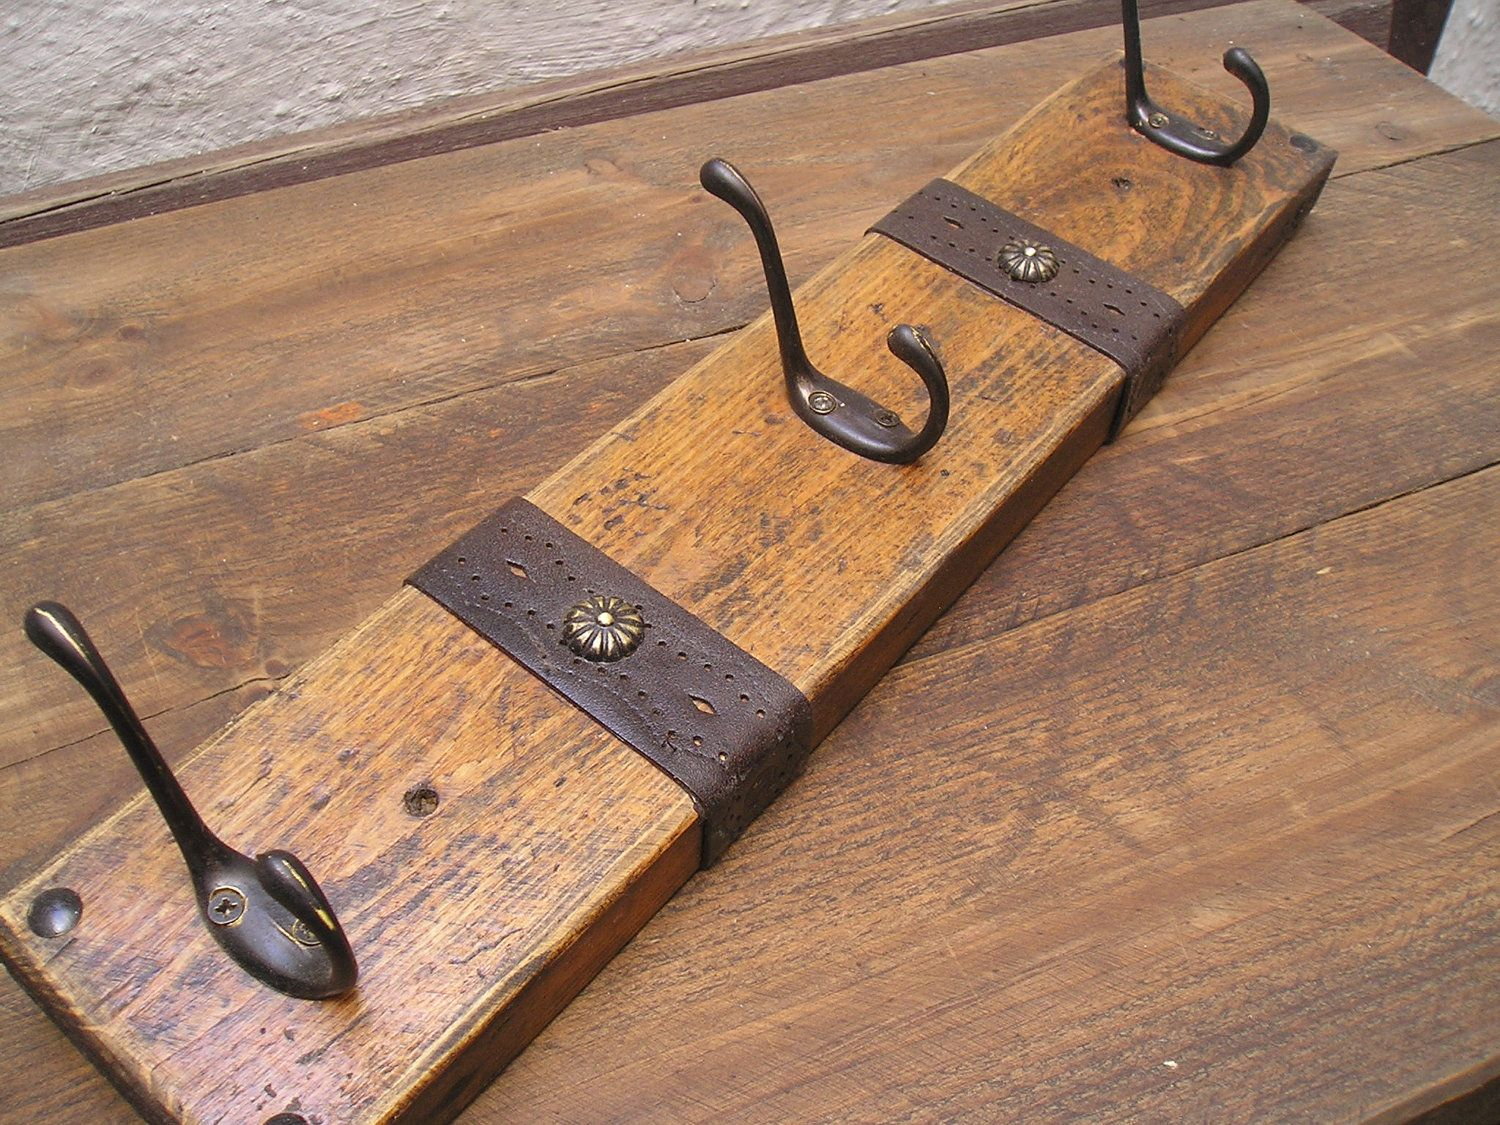 Wooden Hooks Handmade Wooden Rustic Coat Rack Towel Holder Bathrobe